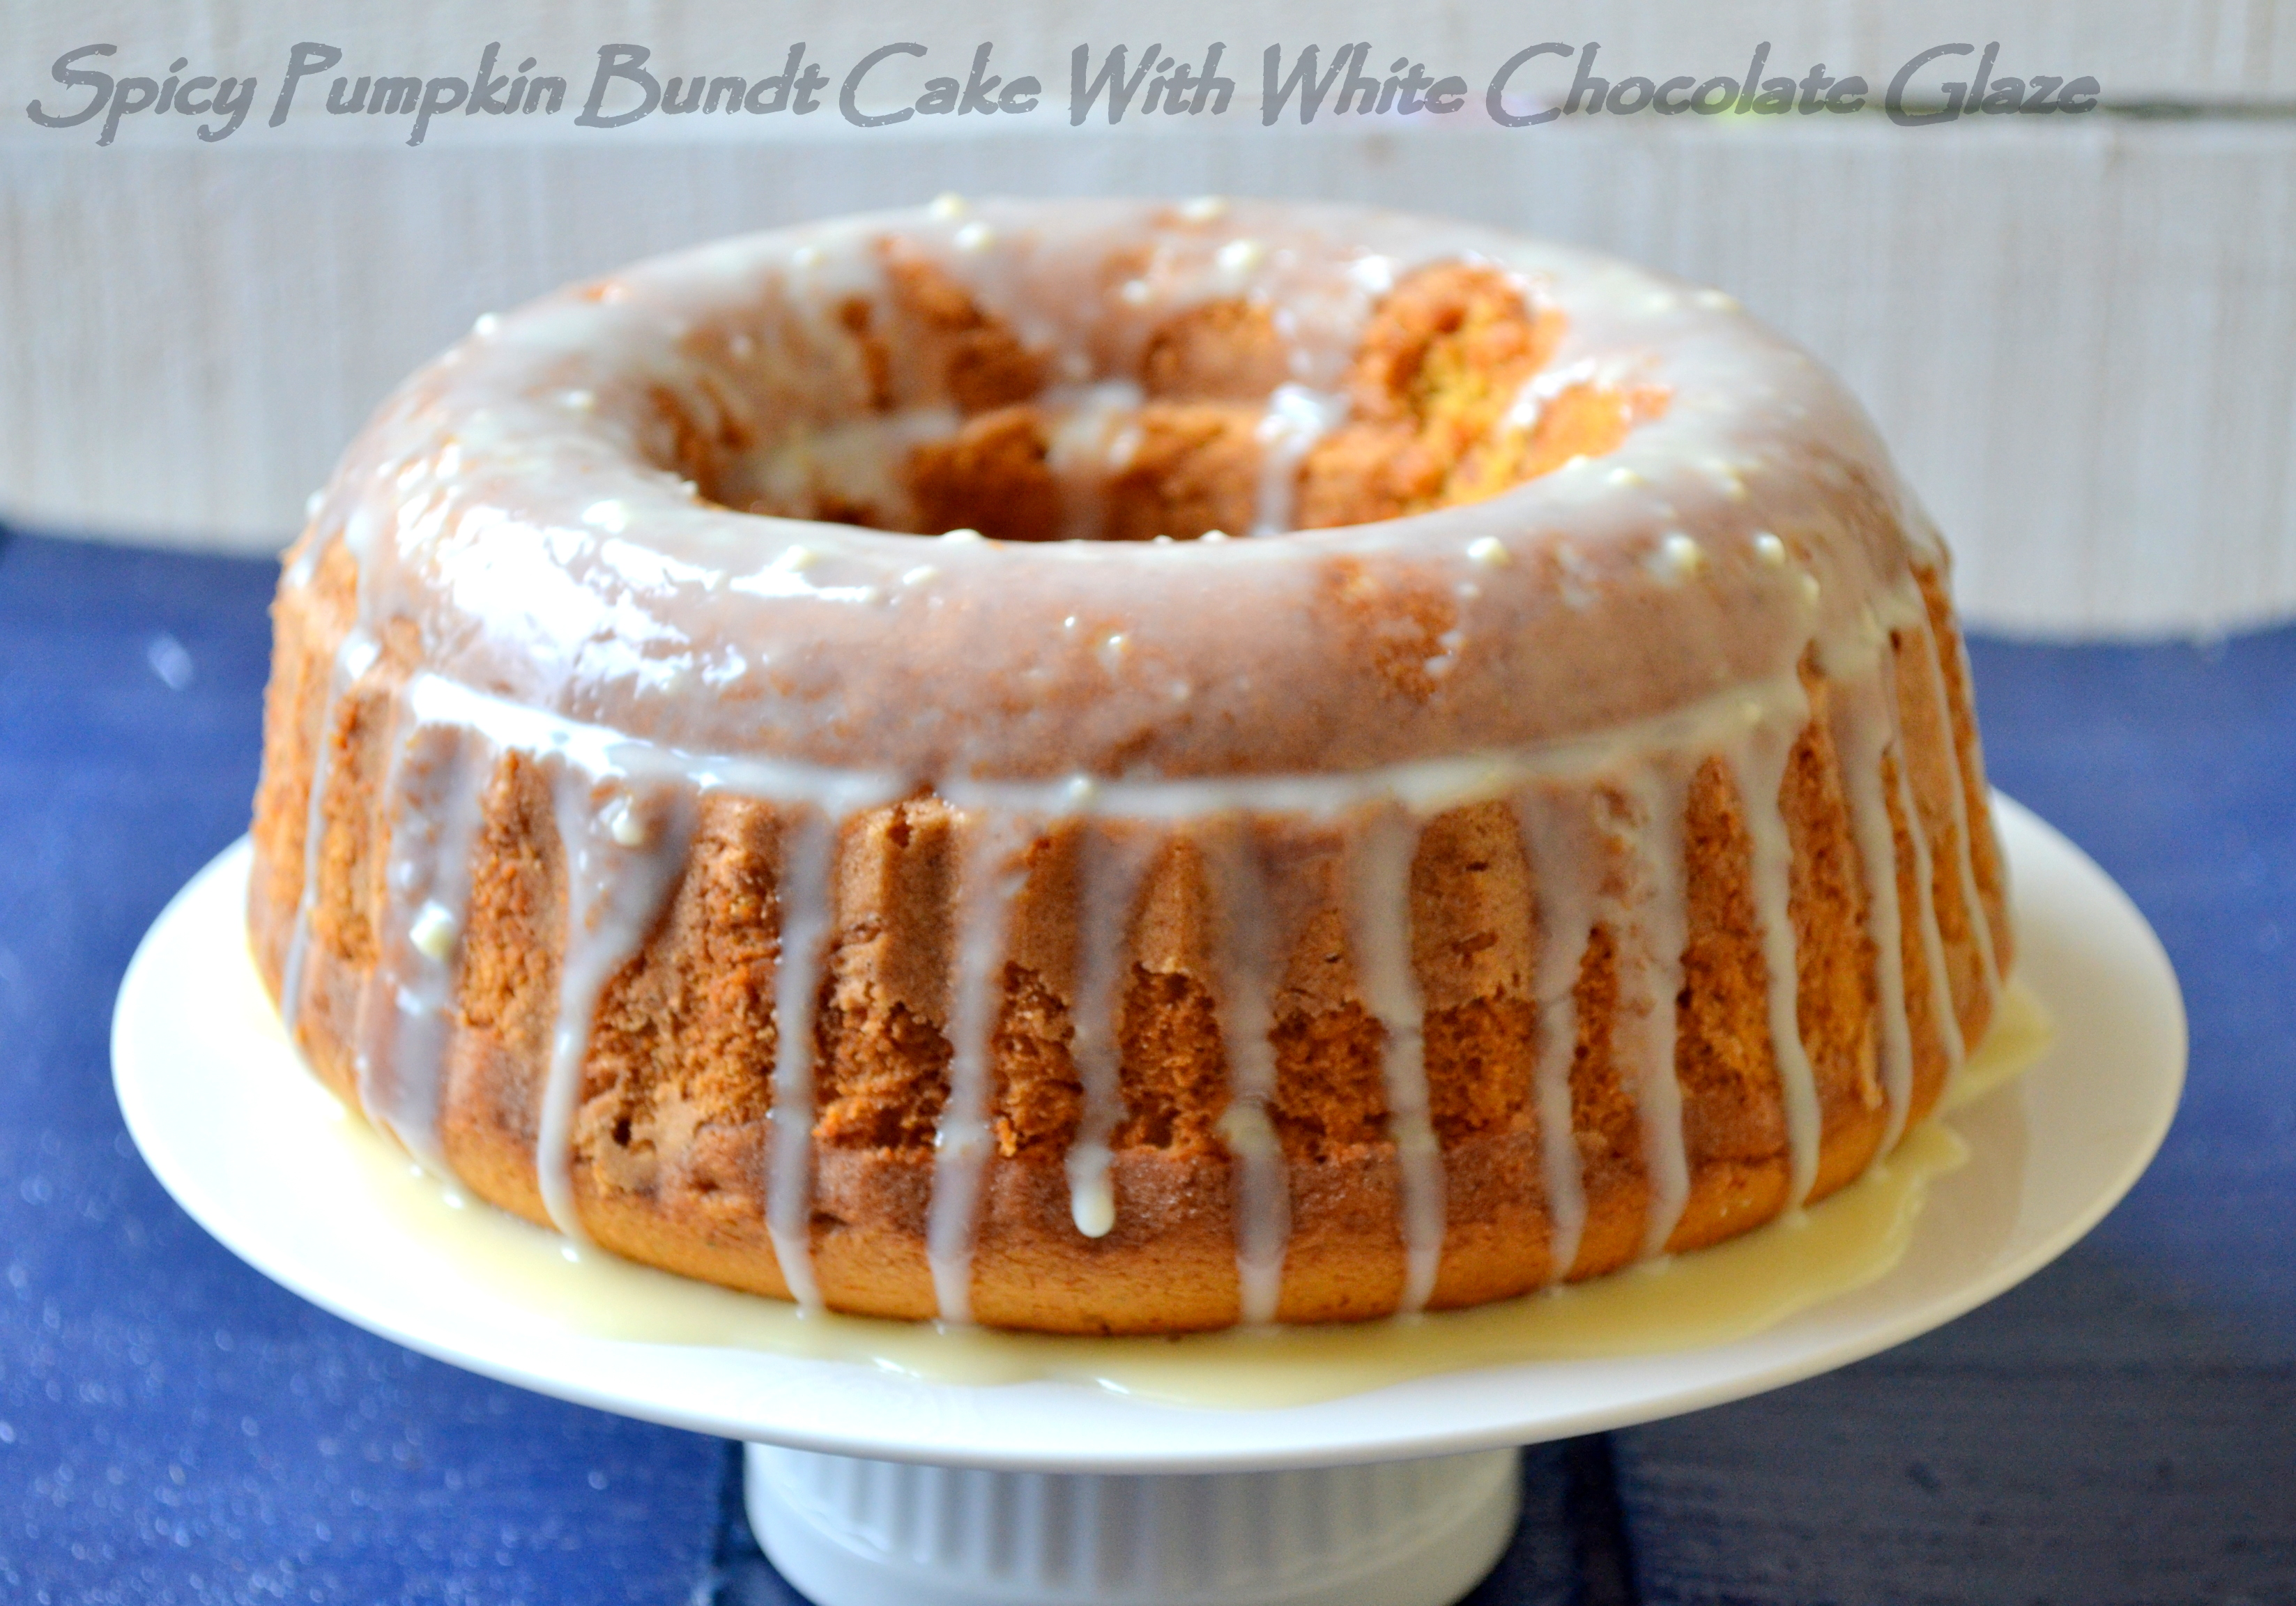 Spicy Pumpkin Bundt Cake With White Chocolate Glaze - The White ...